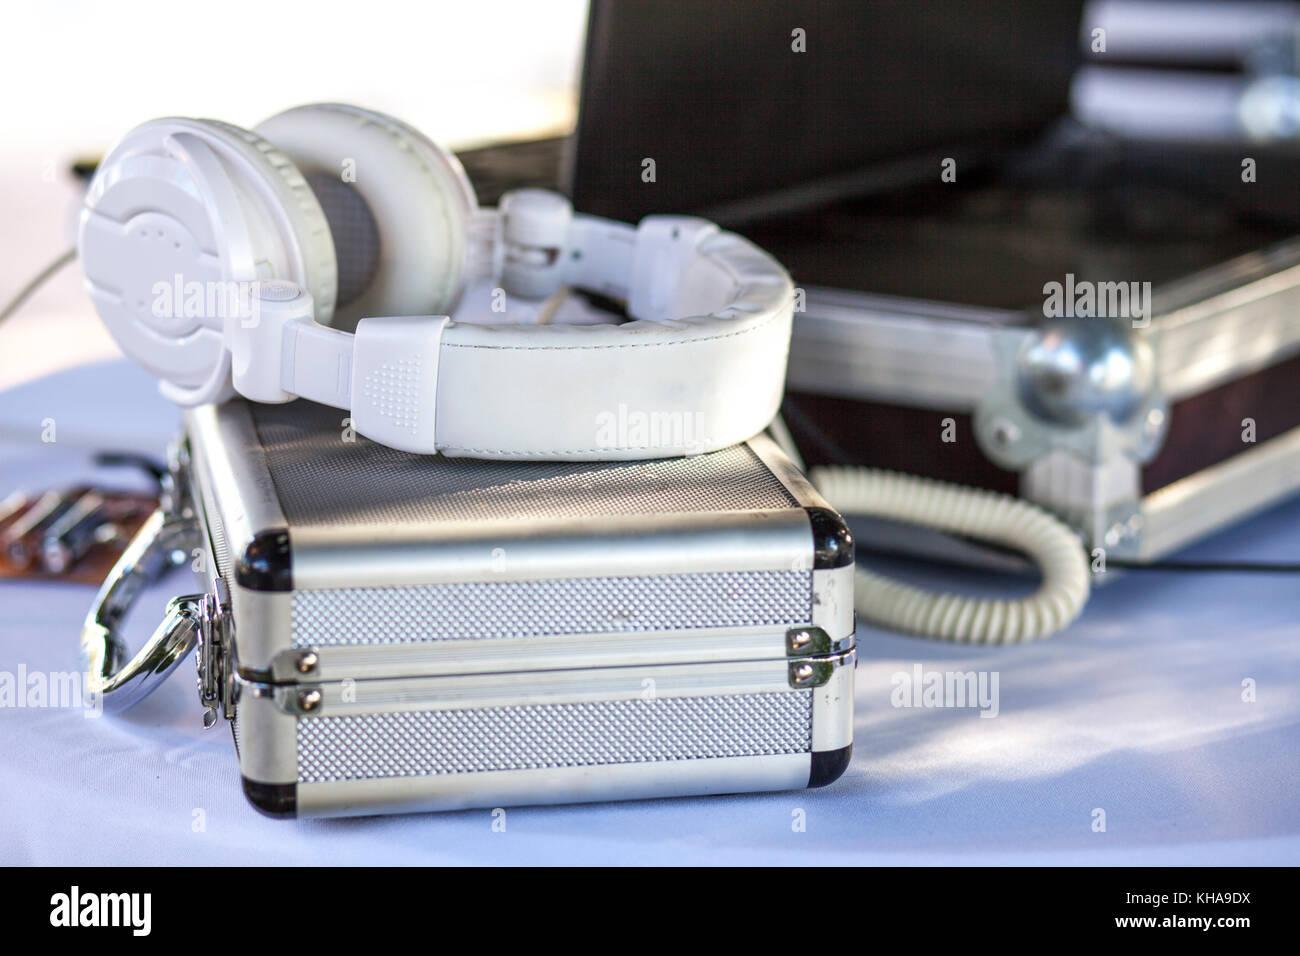 Dj Table For Wedding With Headphones, Suitcases And Laptop. Selective Focus    Stock Image